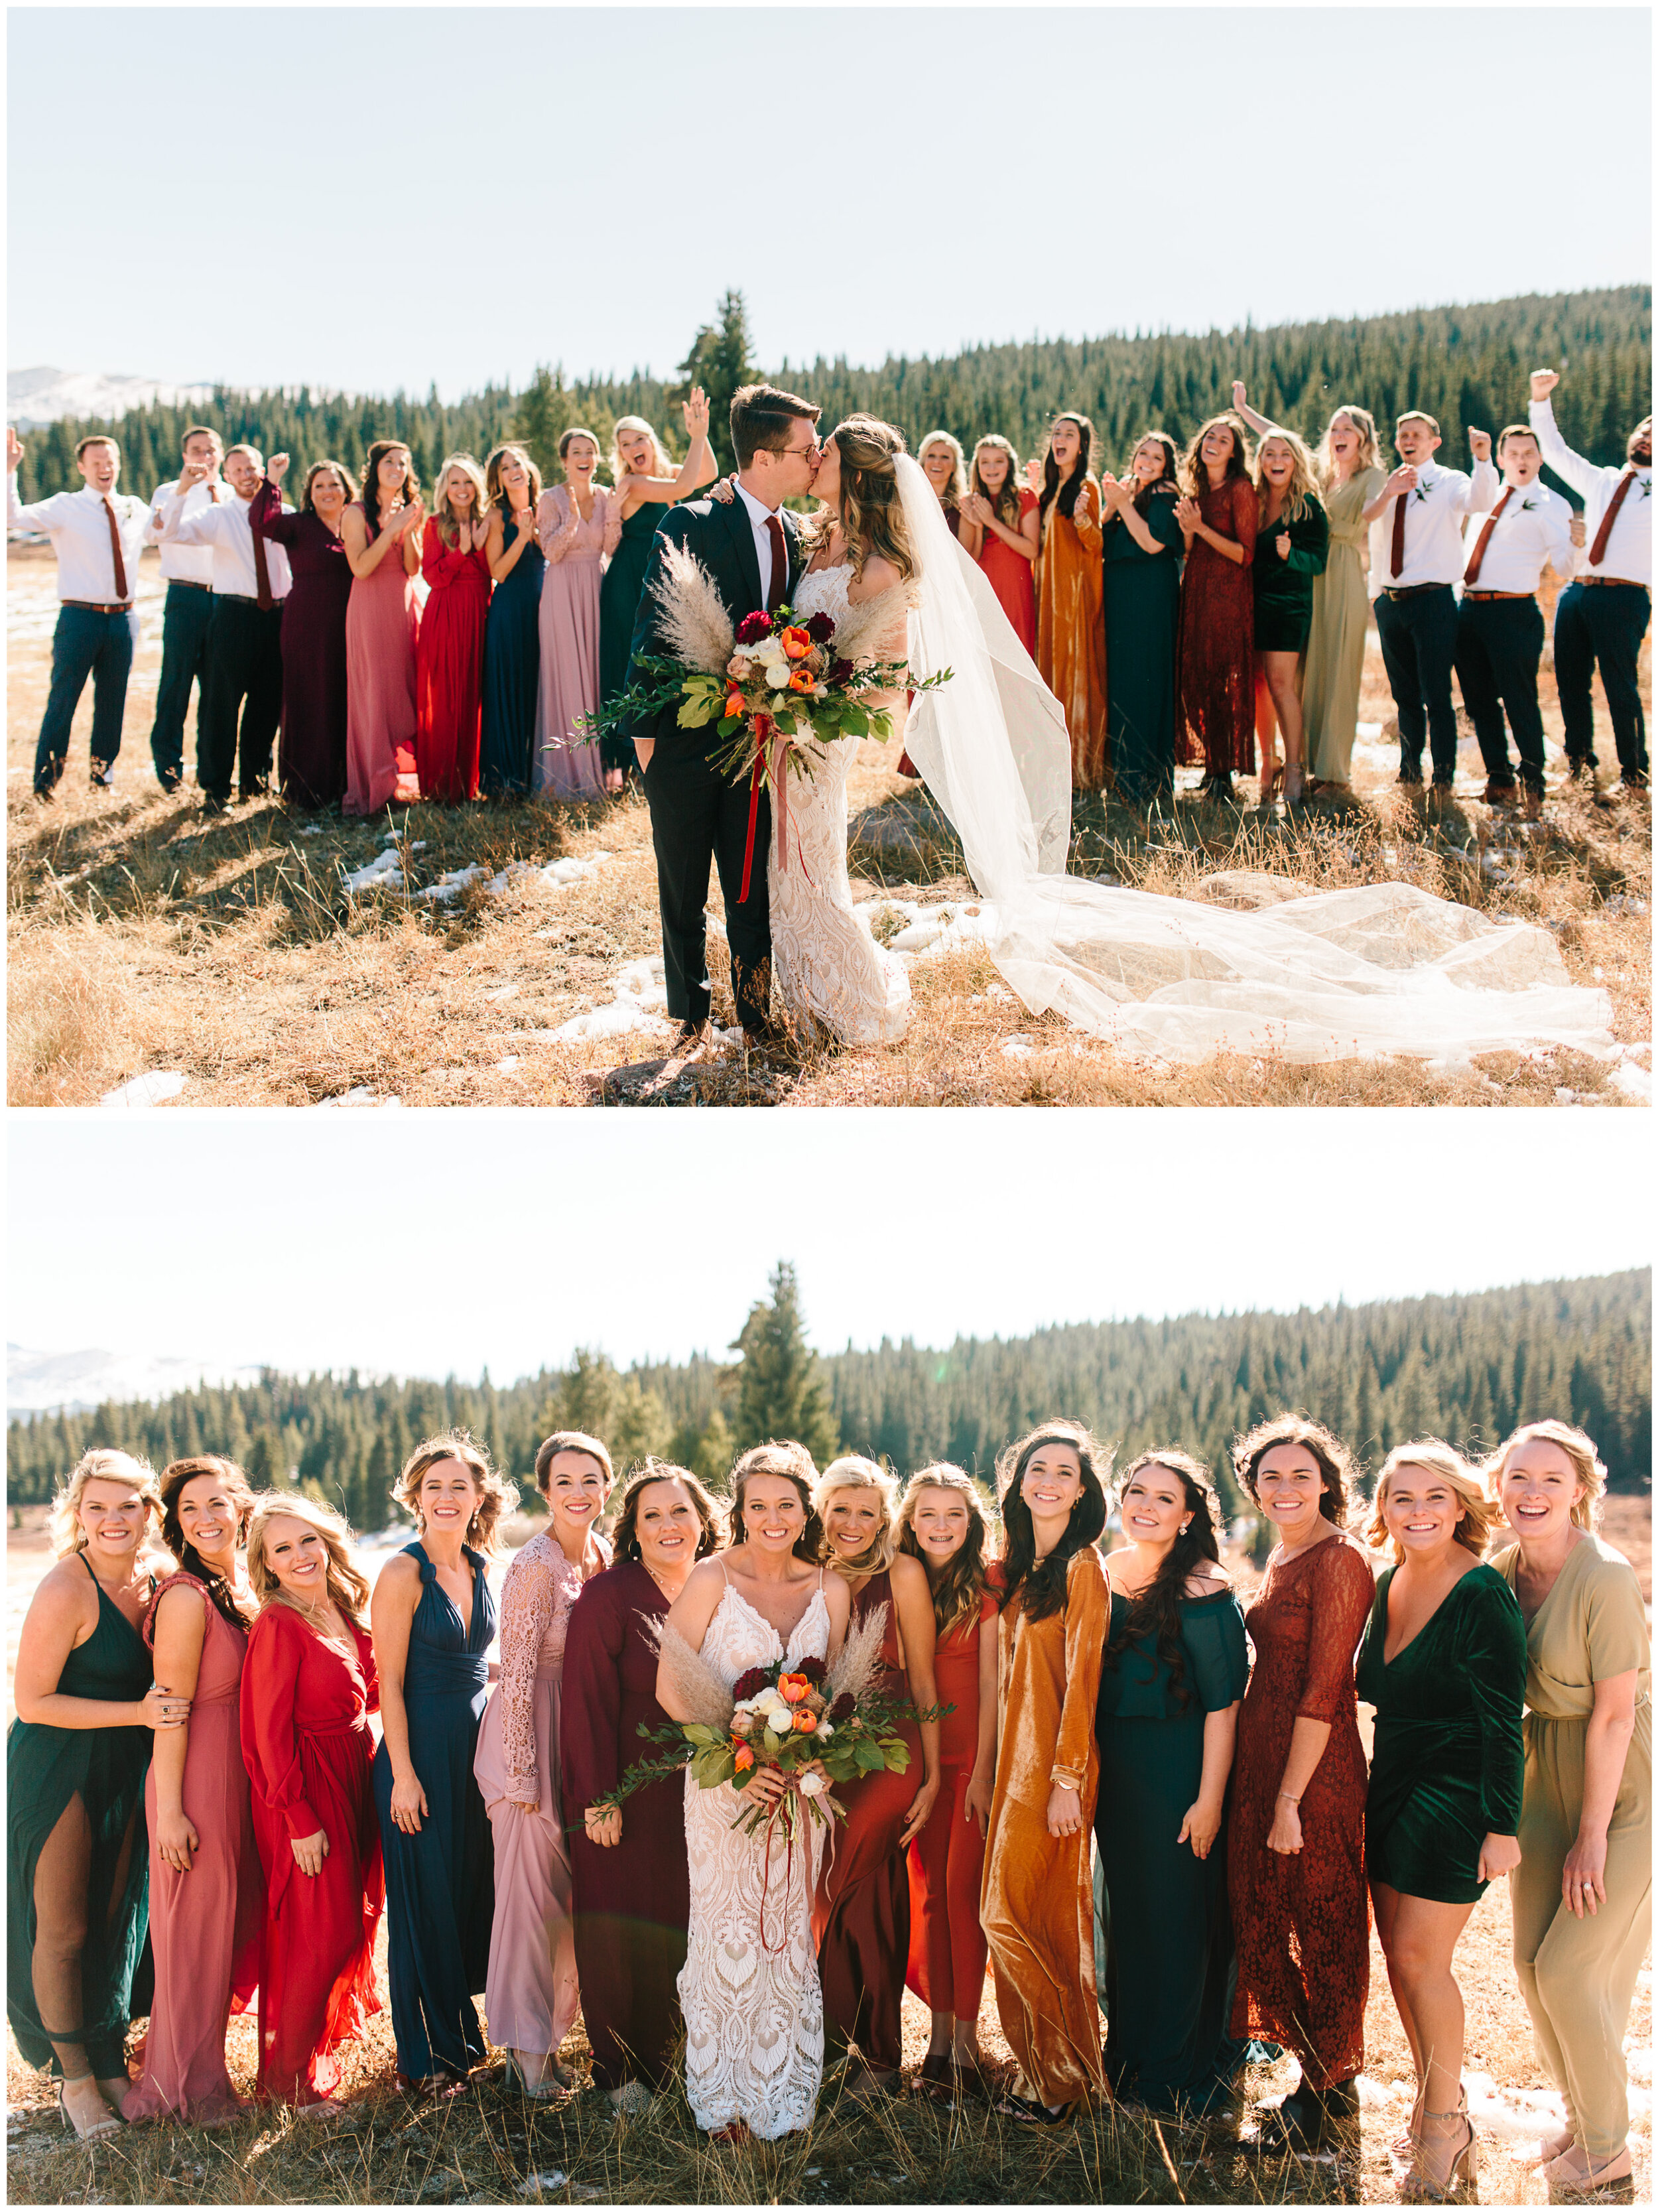 vail_colorado_wedding_edit3.jpg